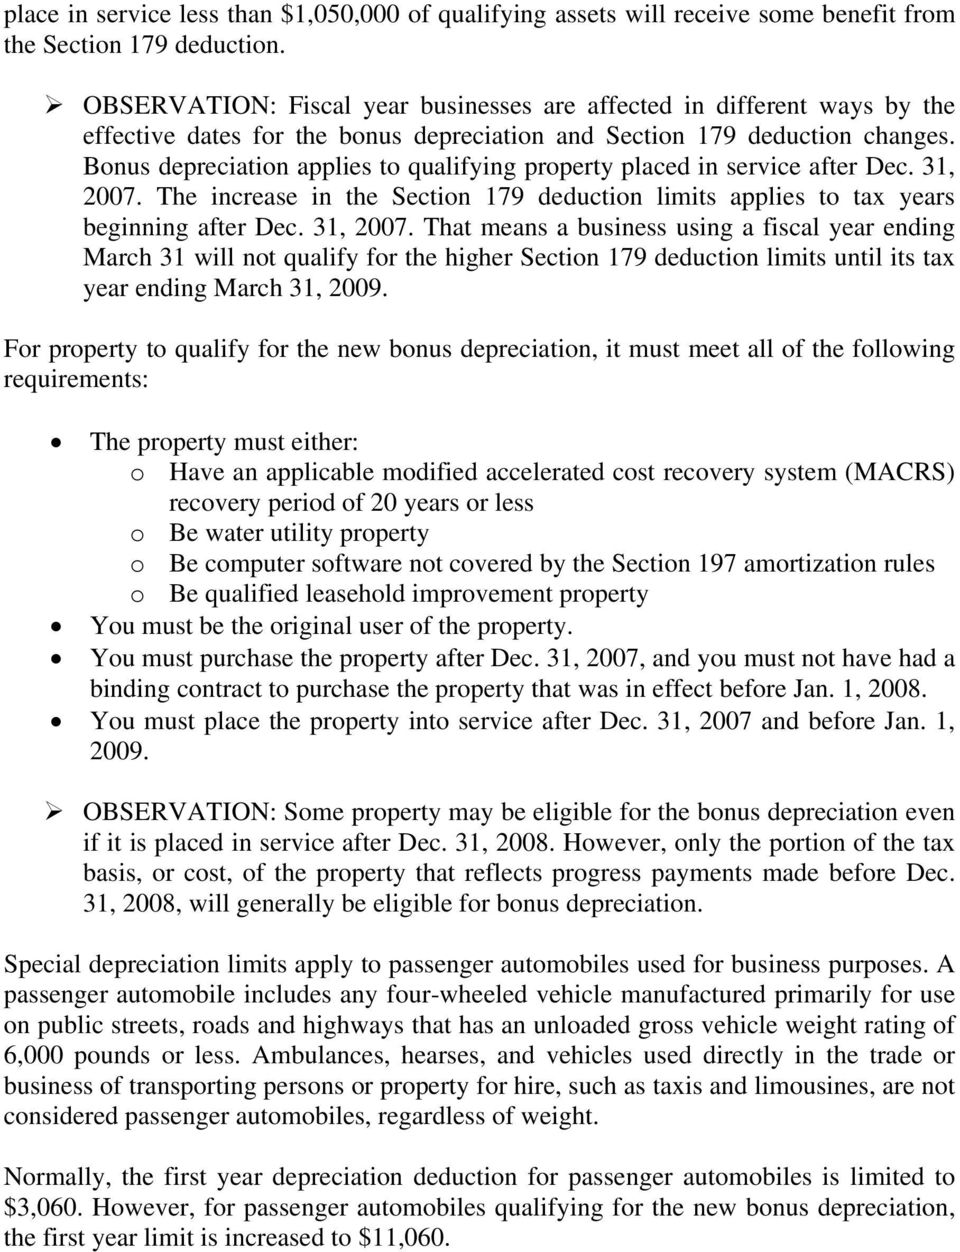 Bonus depreciation applies to qualifying property placed in service after Dec. 31, 2007.